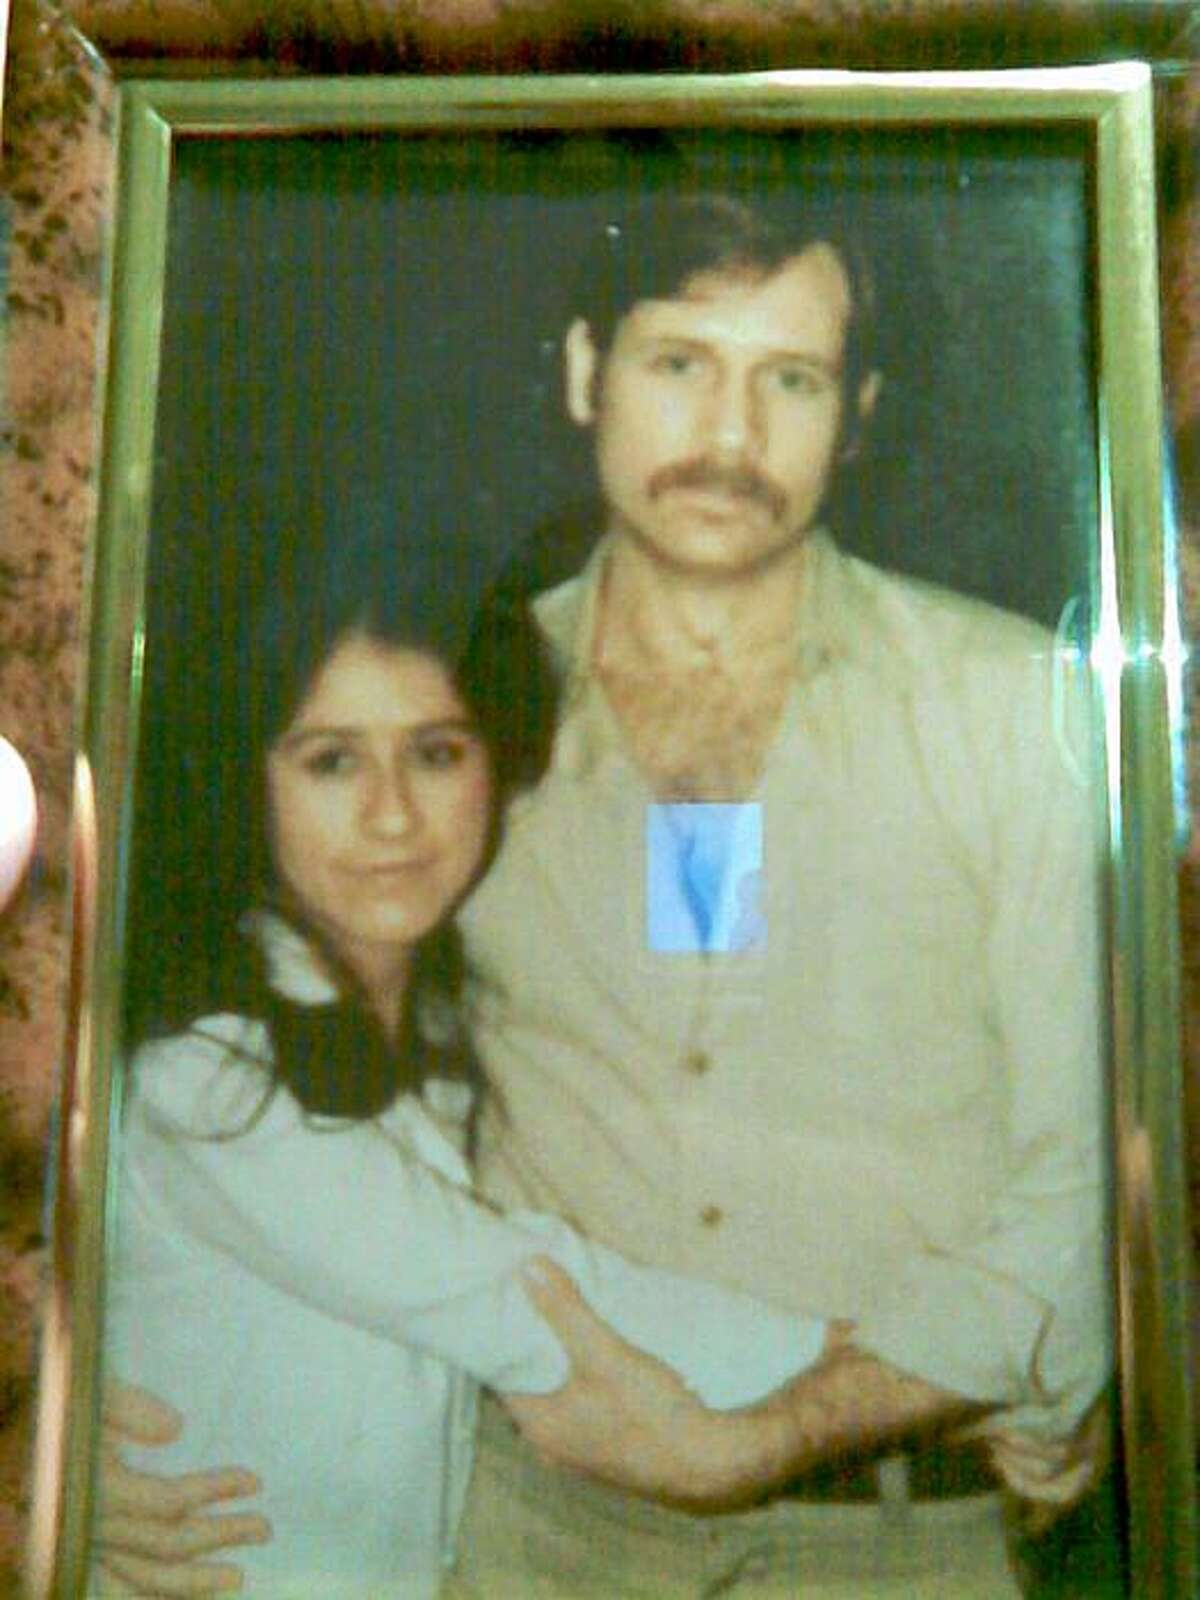 The couple seen arm in arm are Phillip Garrido and Nancy Garrido around the time of their marriage in 1981.